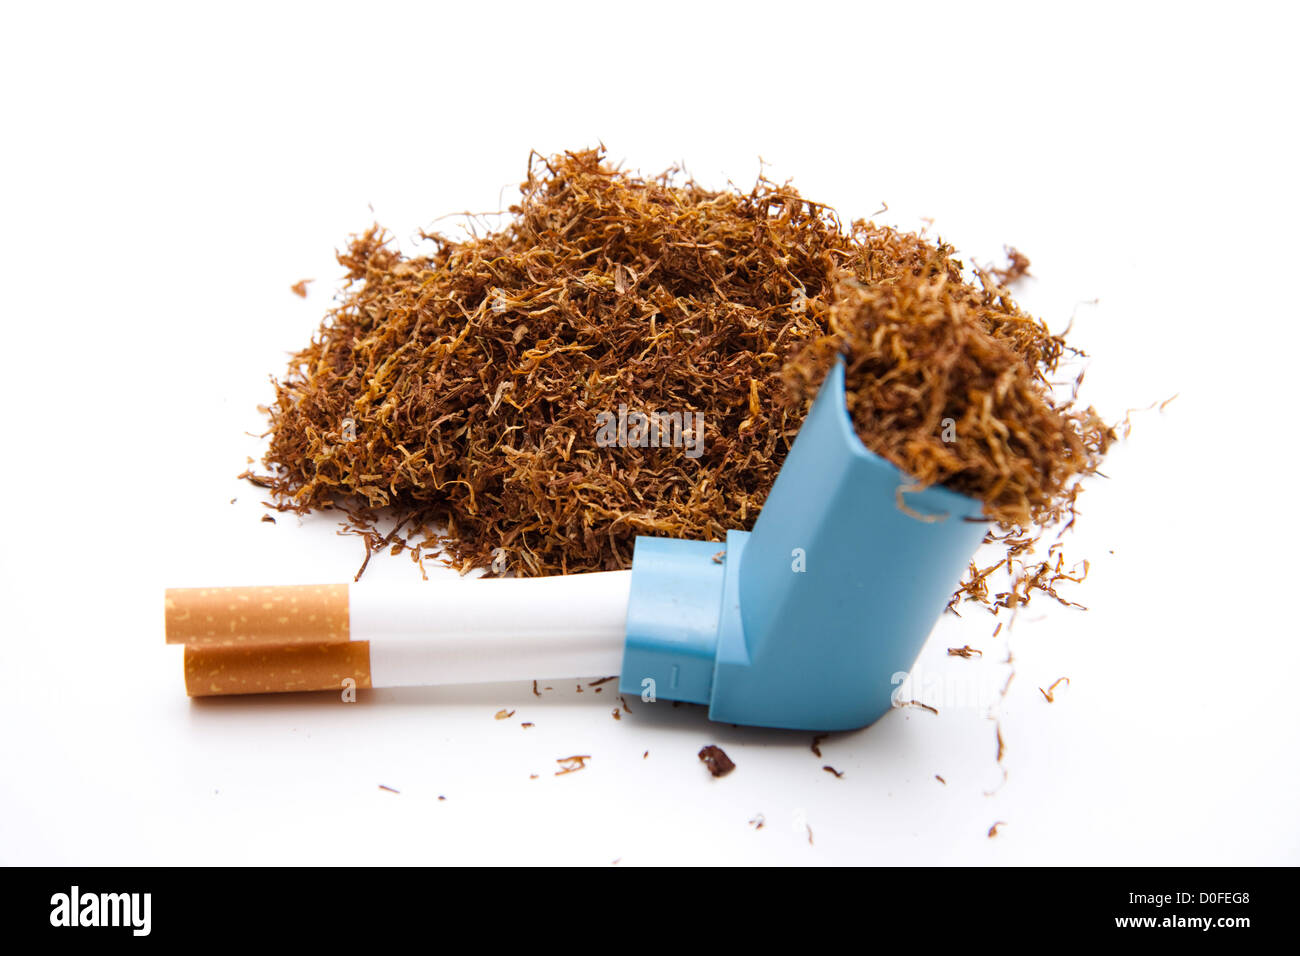 Tobacco with cigarets and Inhaler - Stock Image